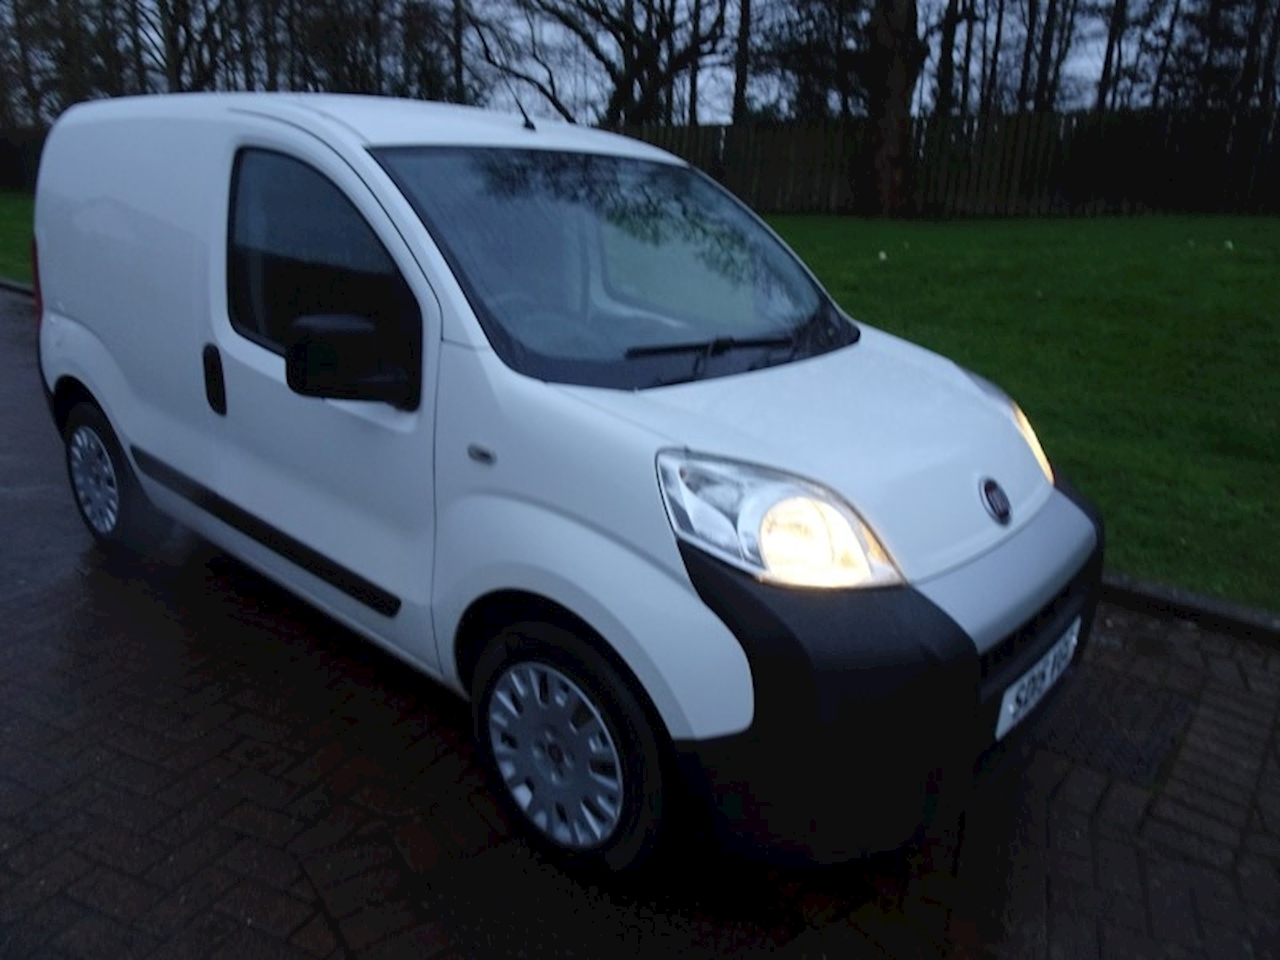 Fiat Fiorino Fiorino Cargo 1.3 75 Multijetii Sx Car Derived Van 1.3 Manual Diesel